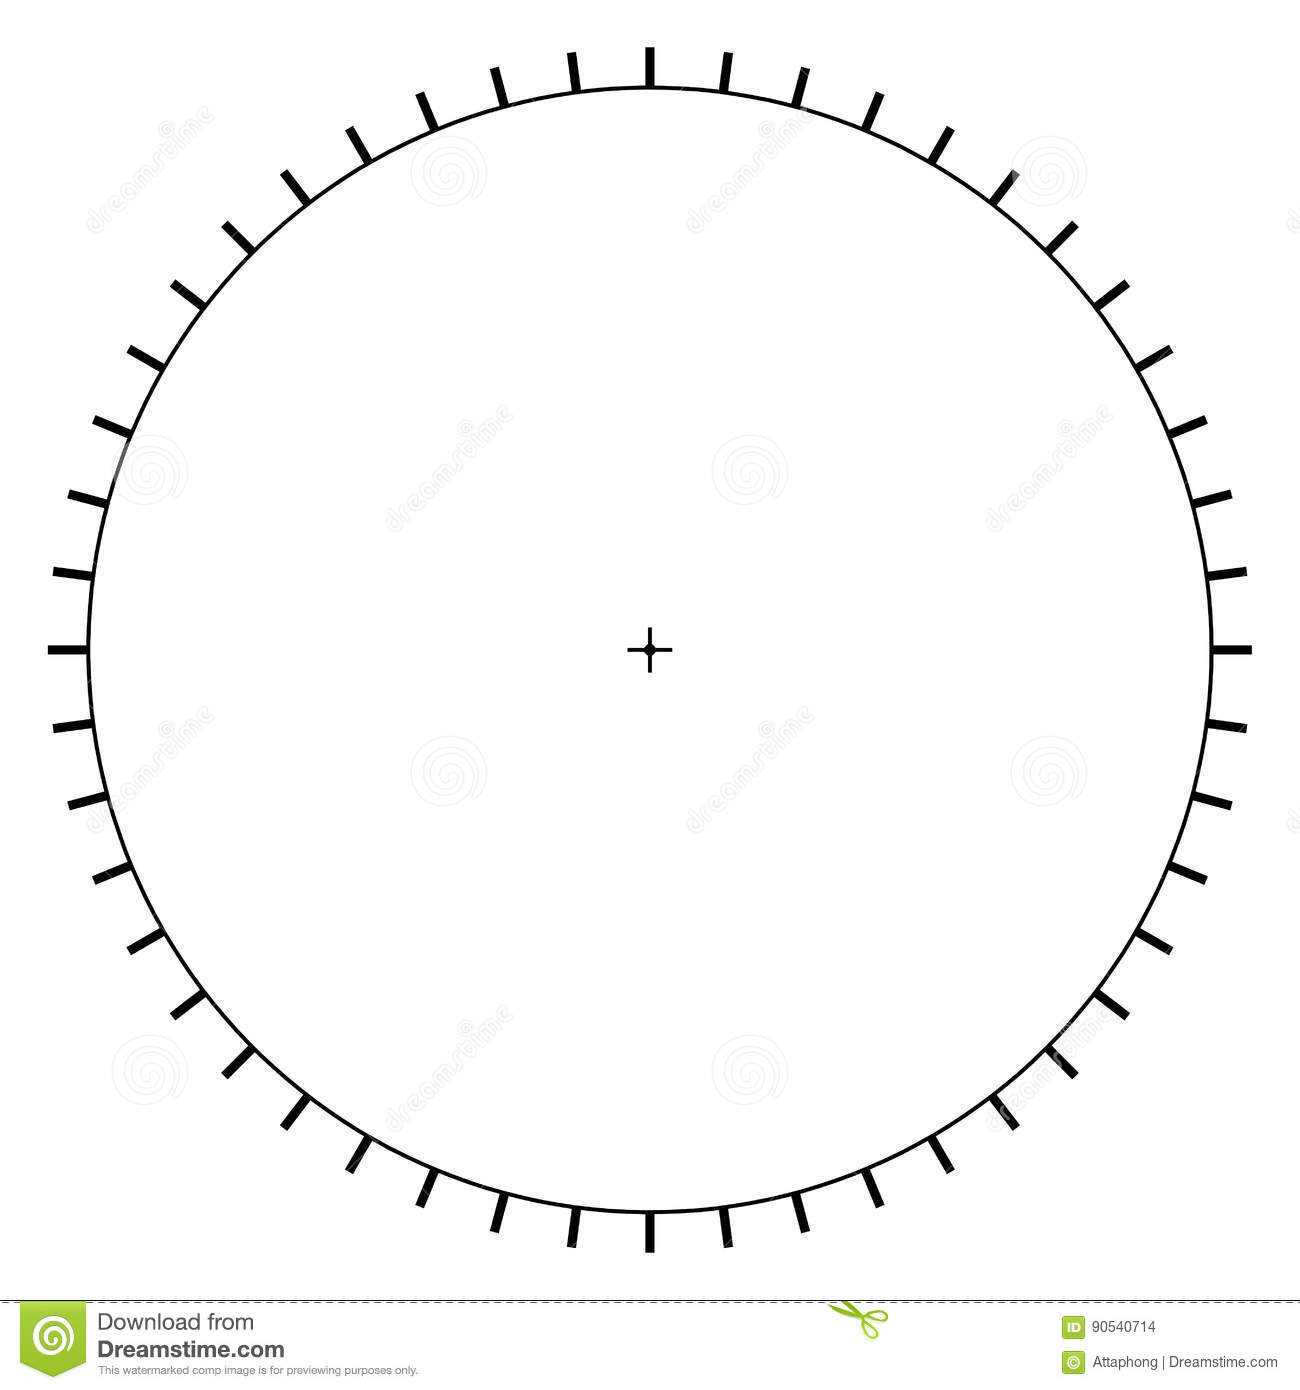 Diagram Of Protractor